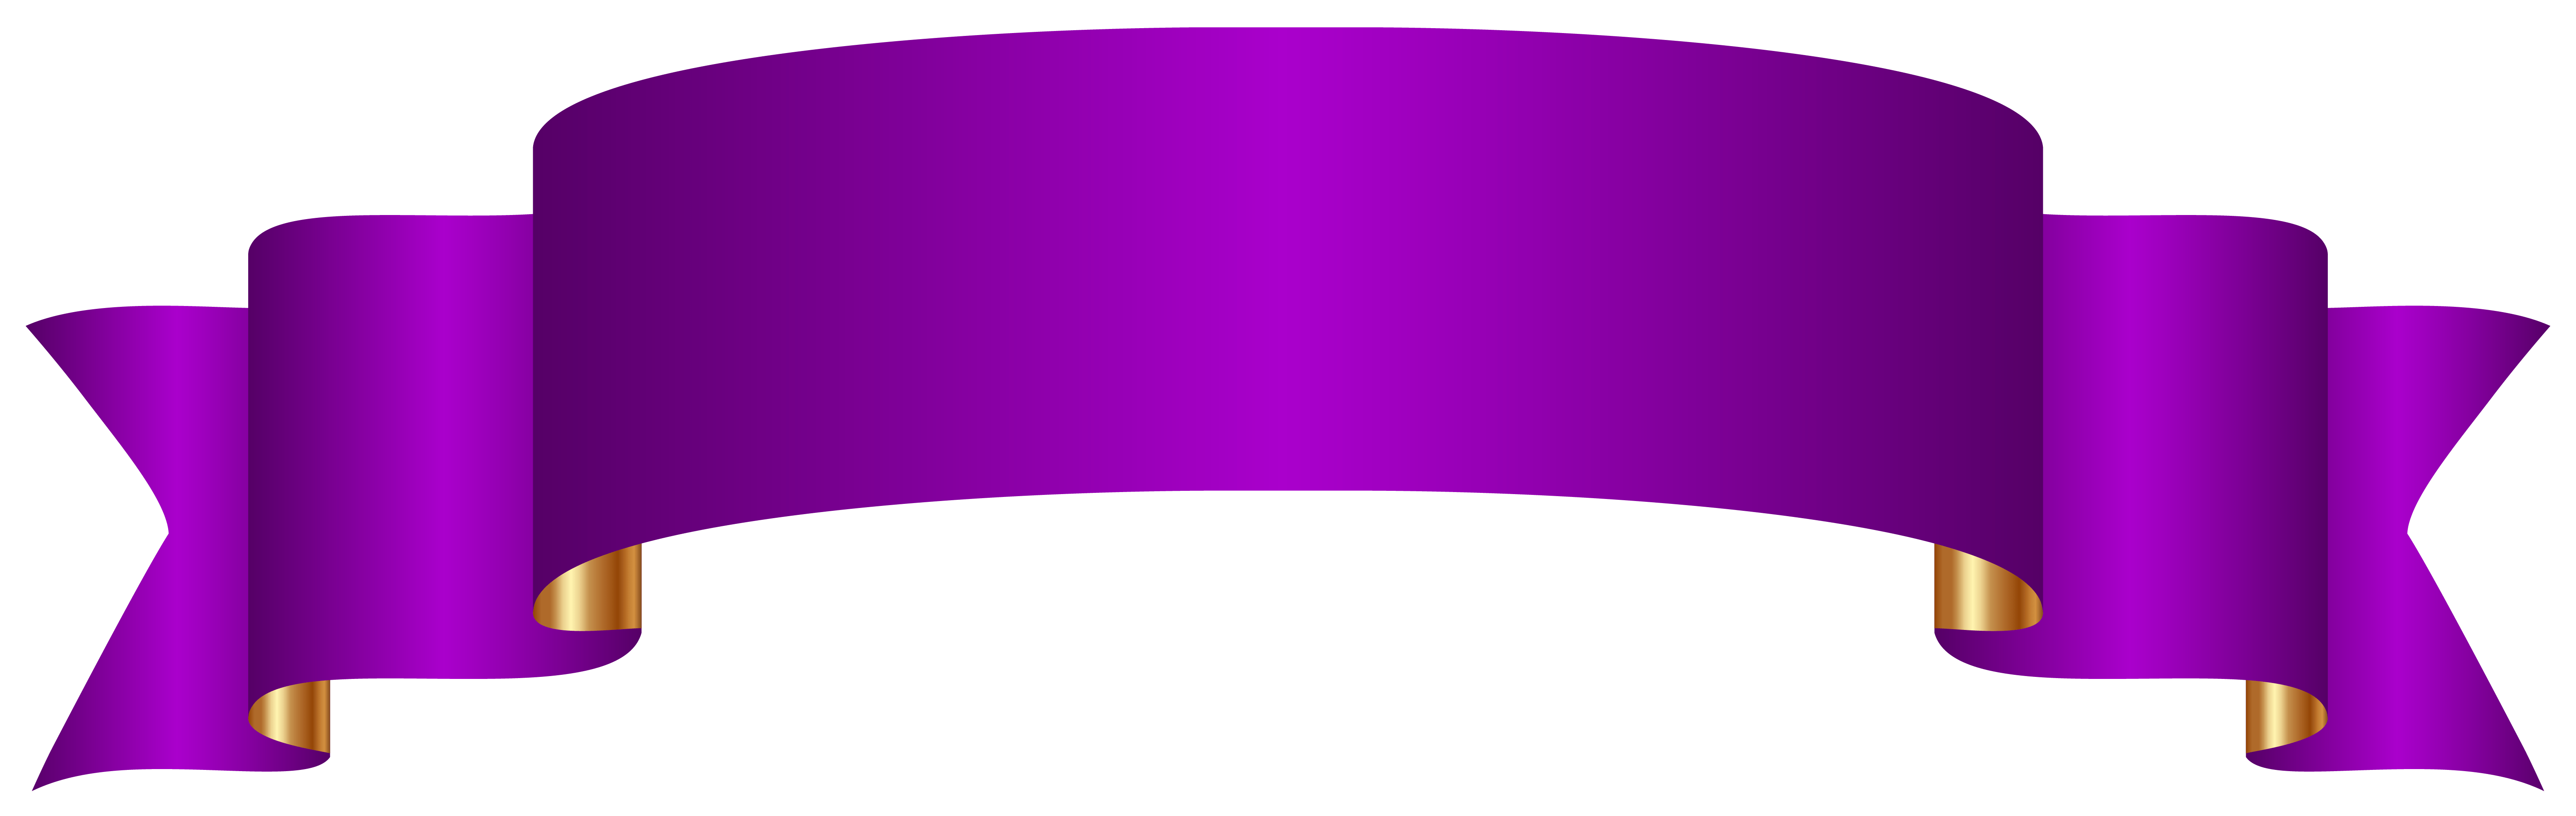 6310x2000 Purple Banner Transparent Png